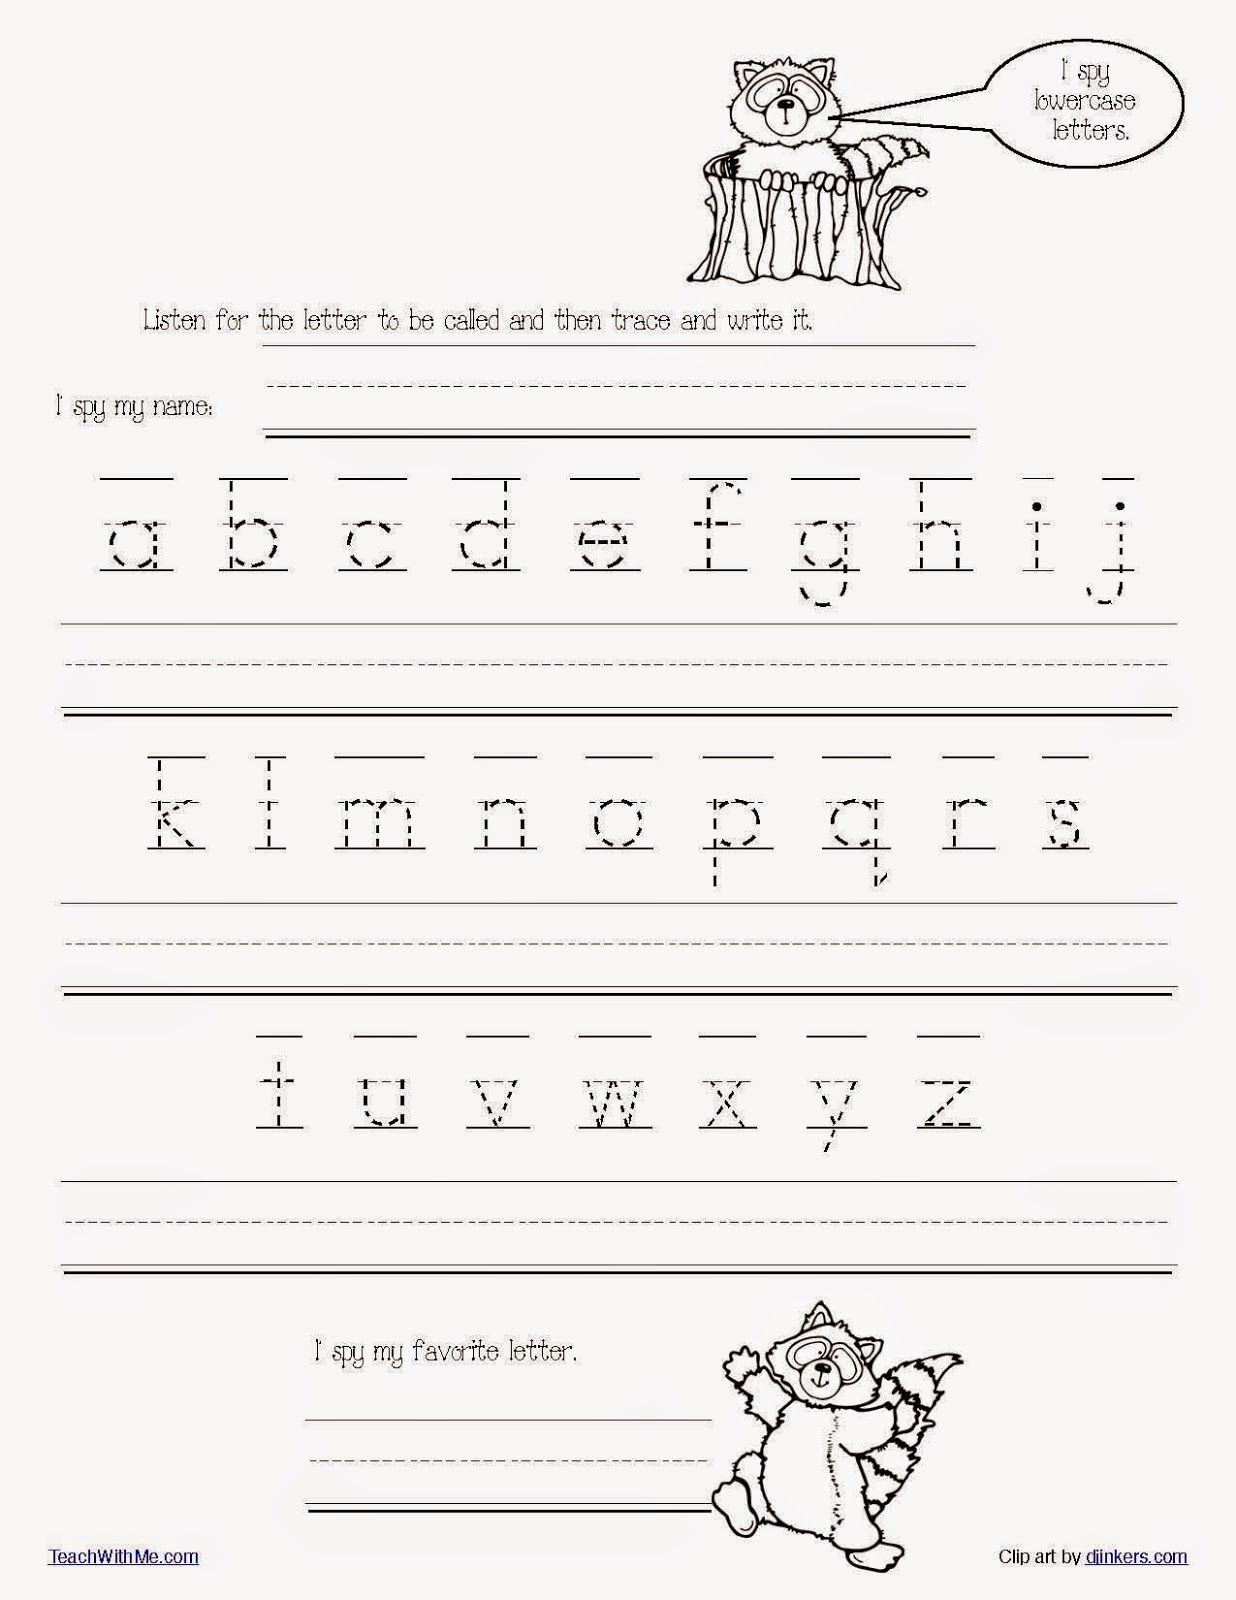 Tracing Lowercase Letters Printable Worksheets Math Worksheet Free Printable Handwriting Worksheets for